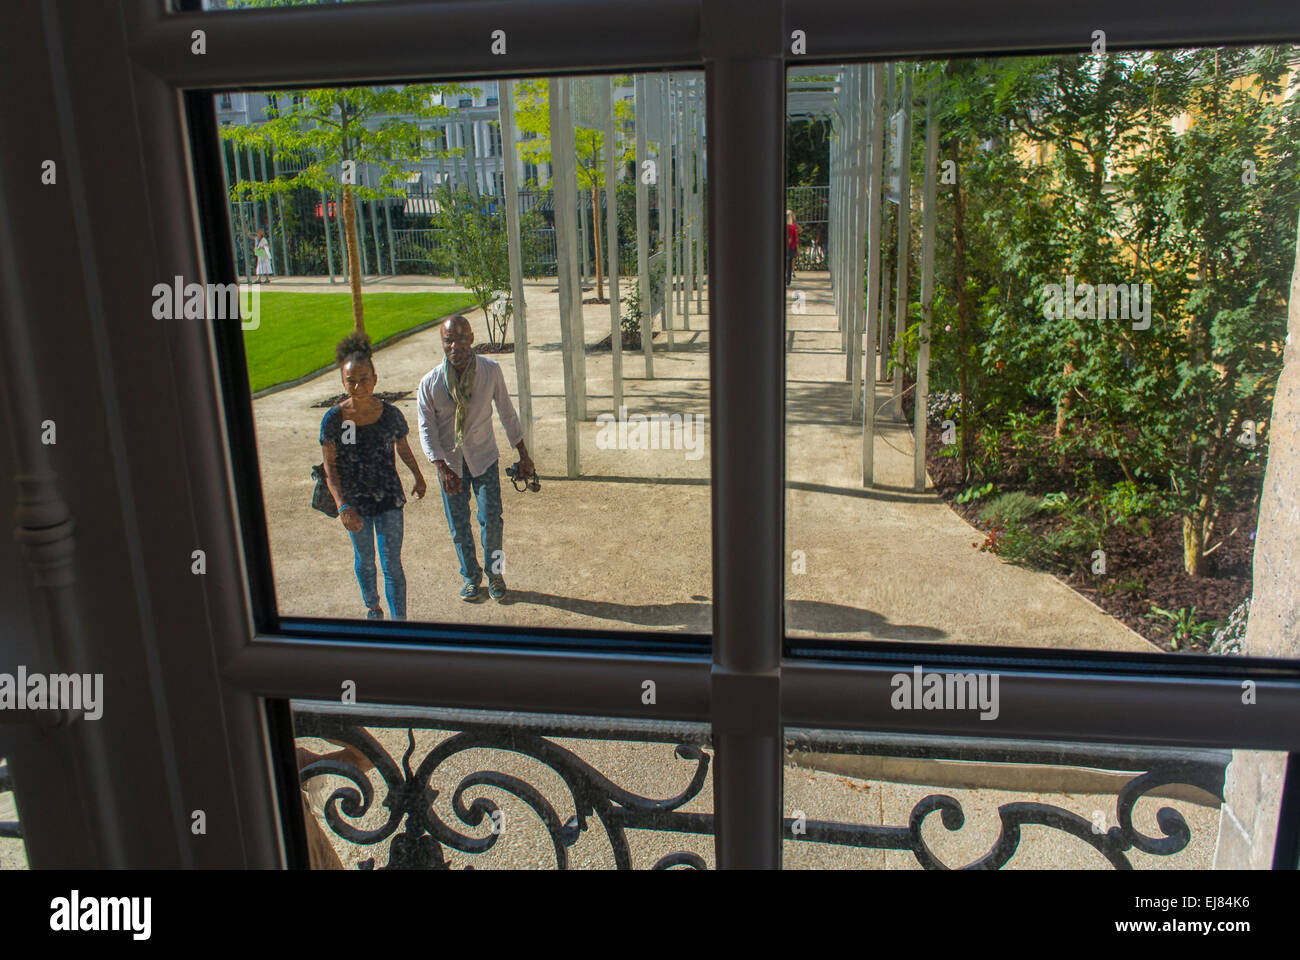 Paris, France, View Looking out of Window, Tourists Visiting outside Picasso Museum, exteriors, Gardens - Stock Image